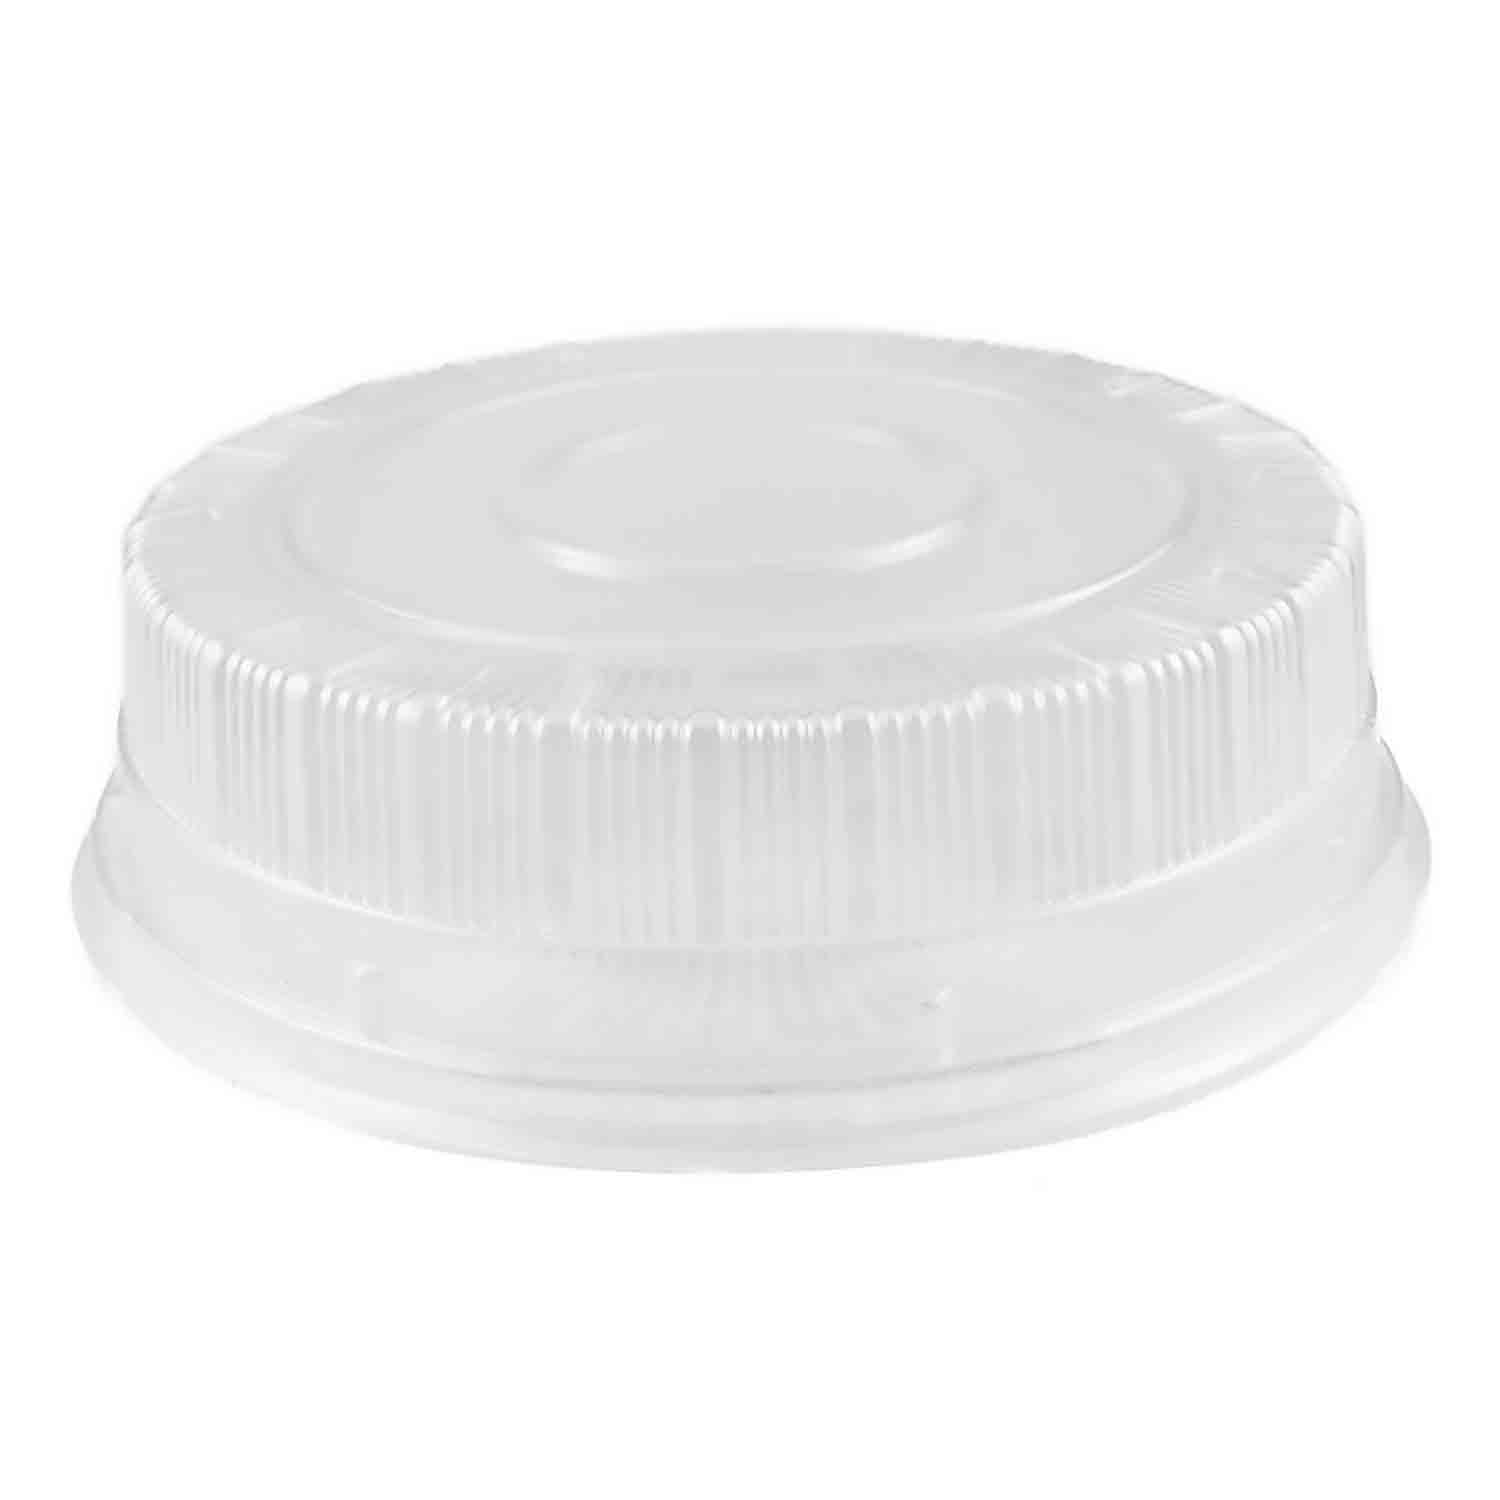 "9"" Clear Platter Dome"